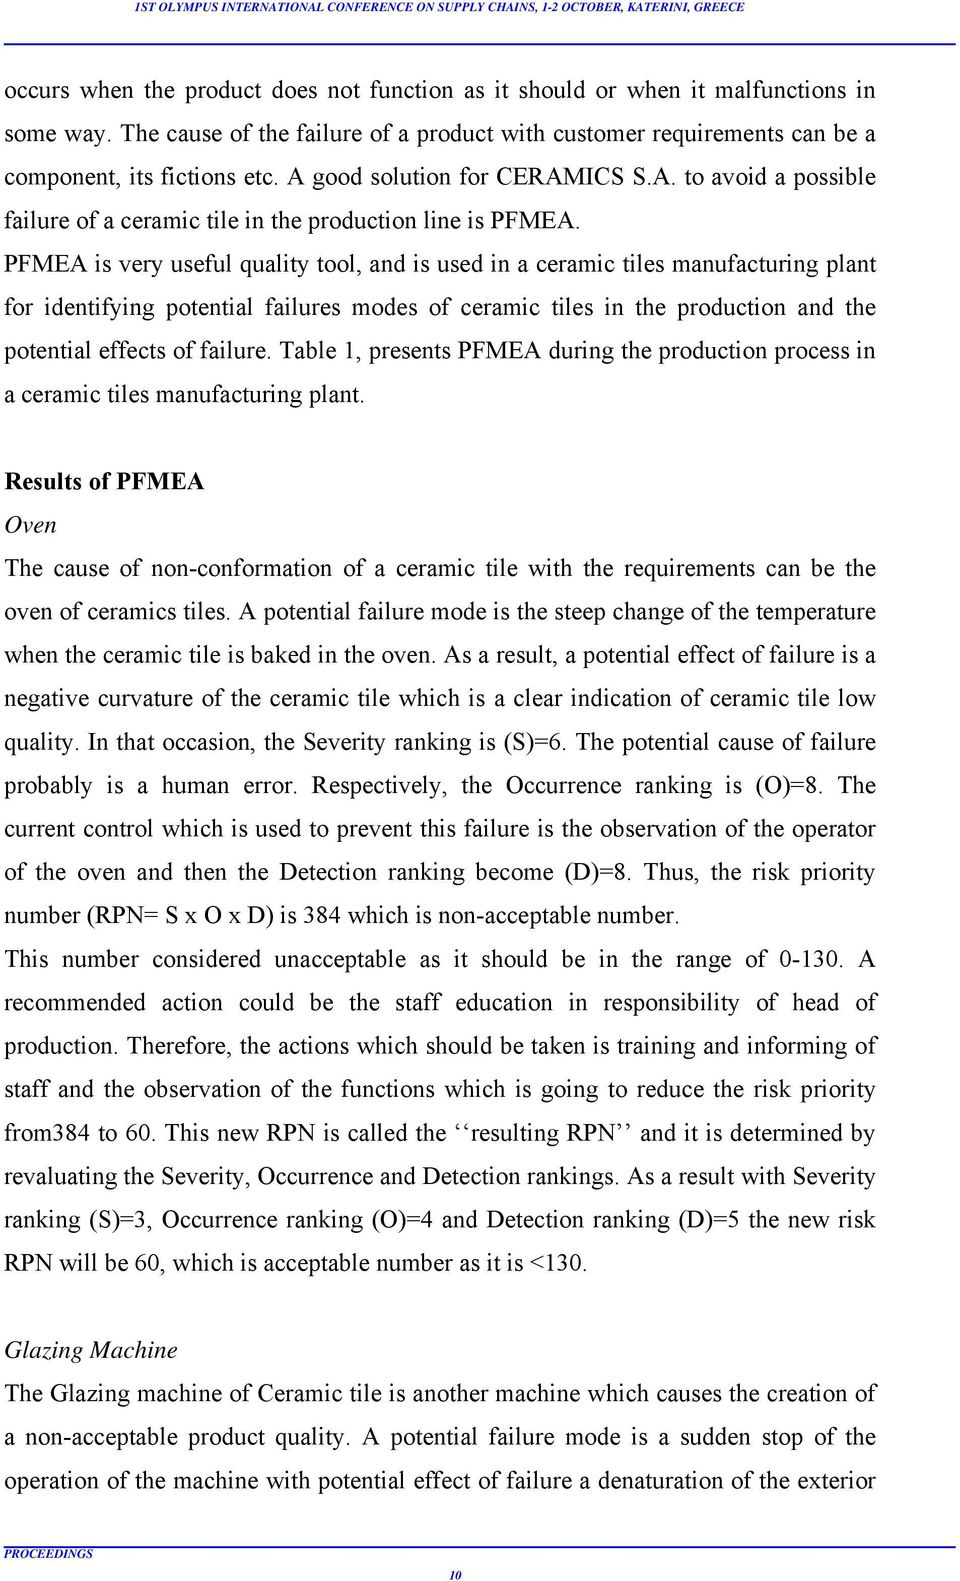 Application Of Failure Modes And Effects Analysis Fmea Of A